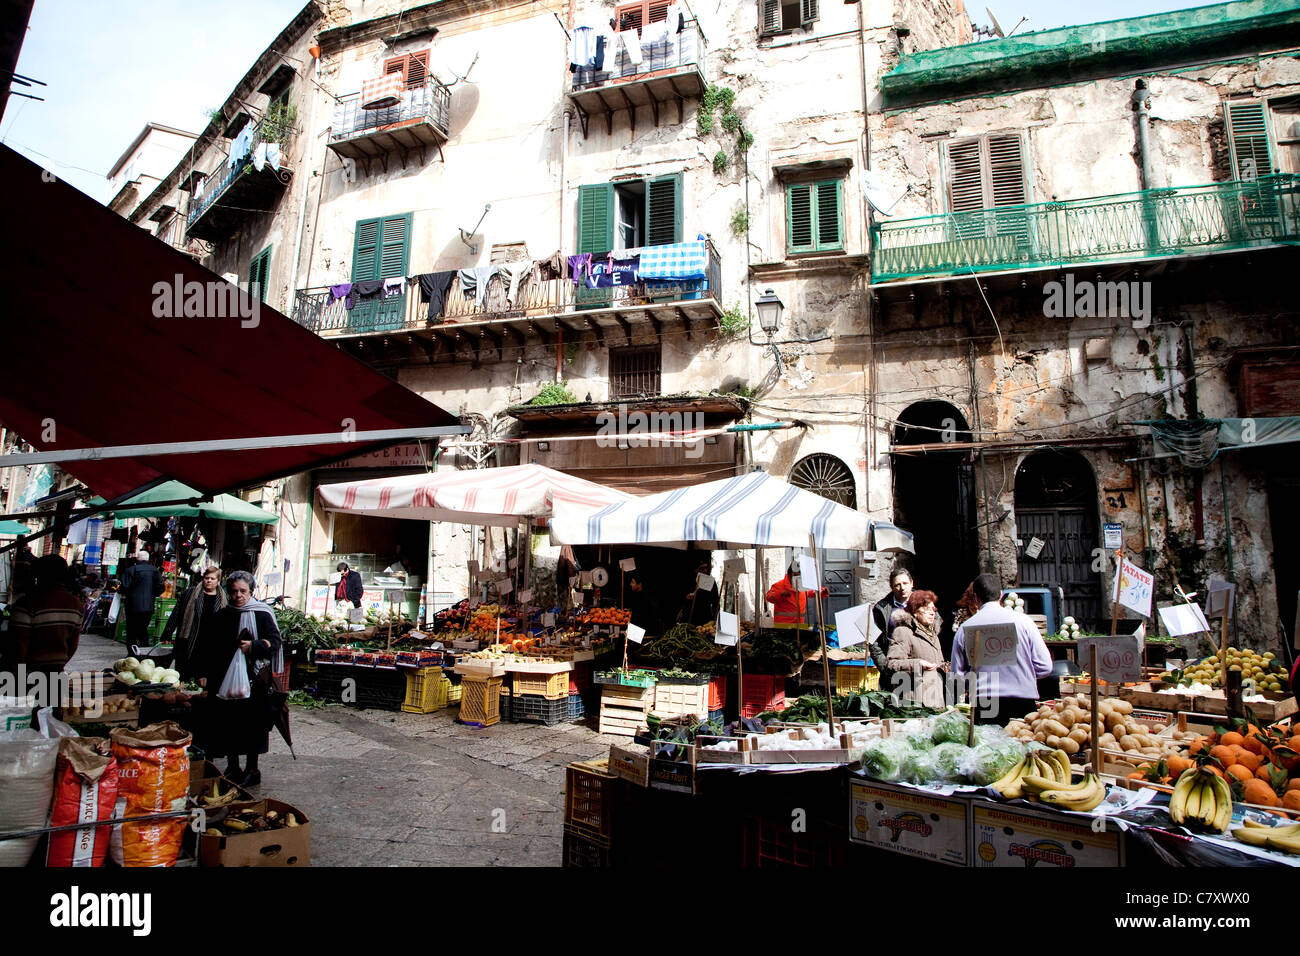 Traditional shops and stalls at Capo, old market in Palermo, Sicily, Sicilia, Italy - Stock Image